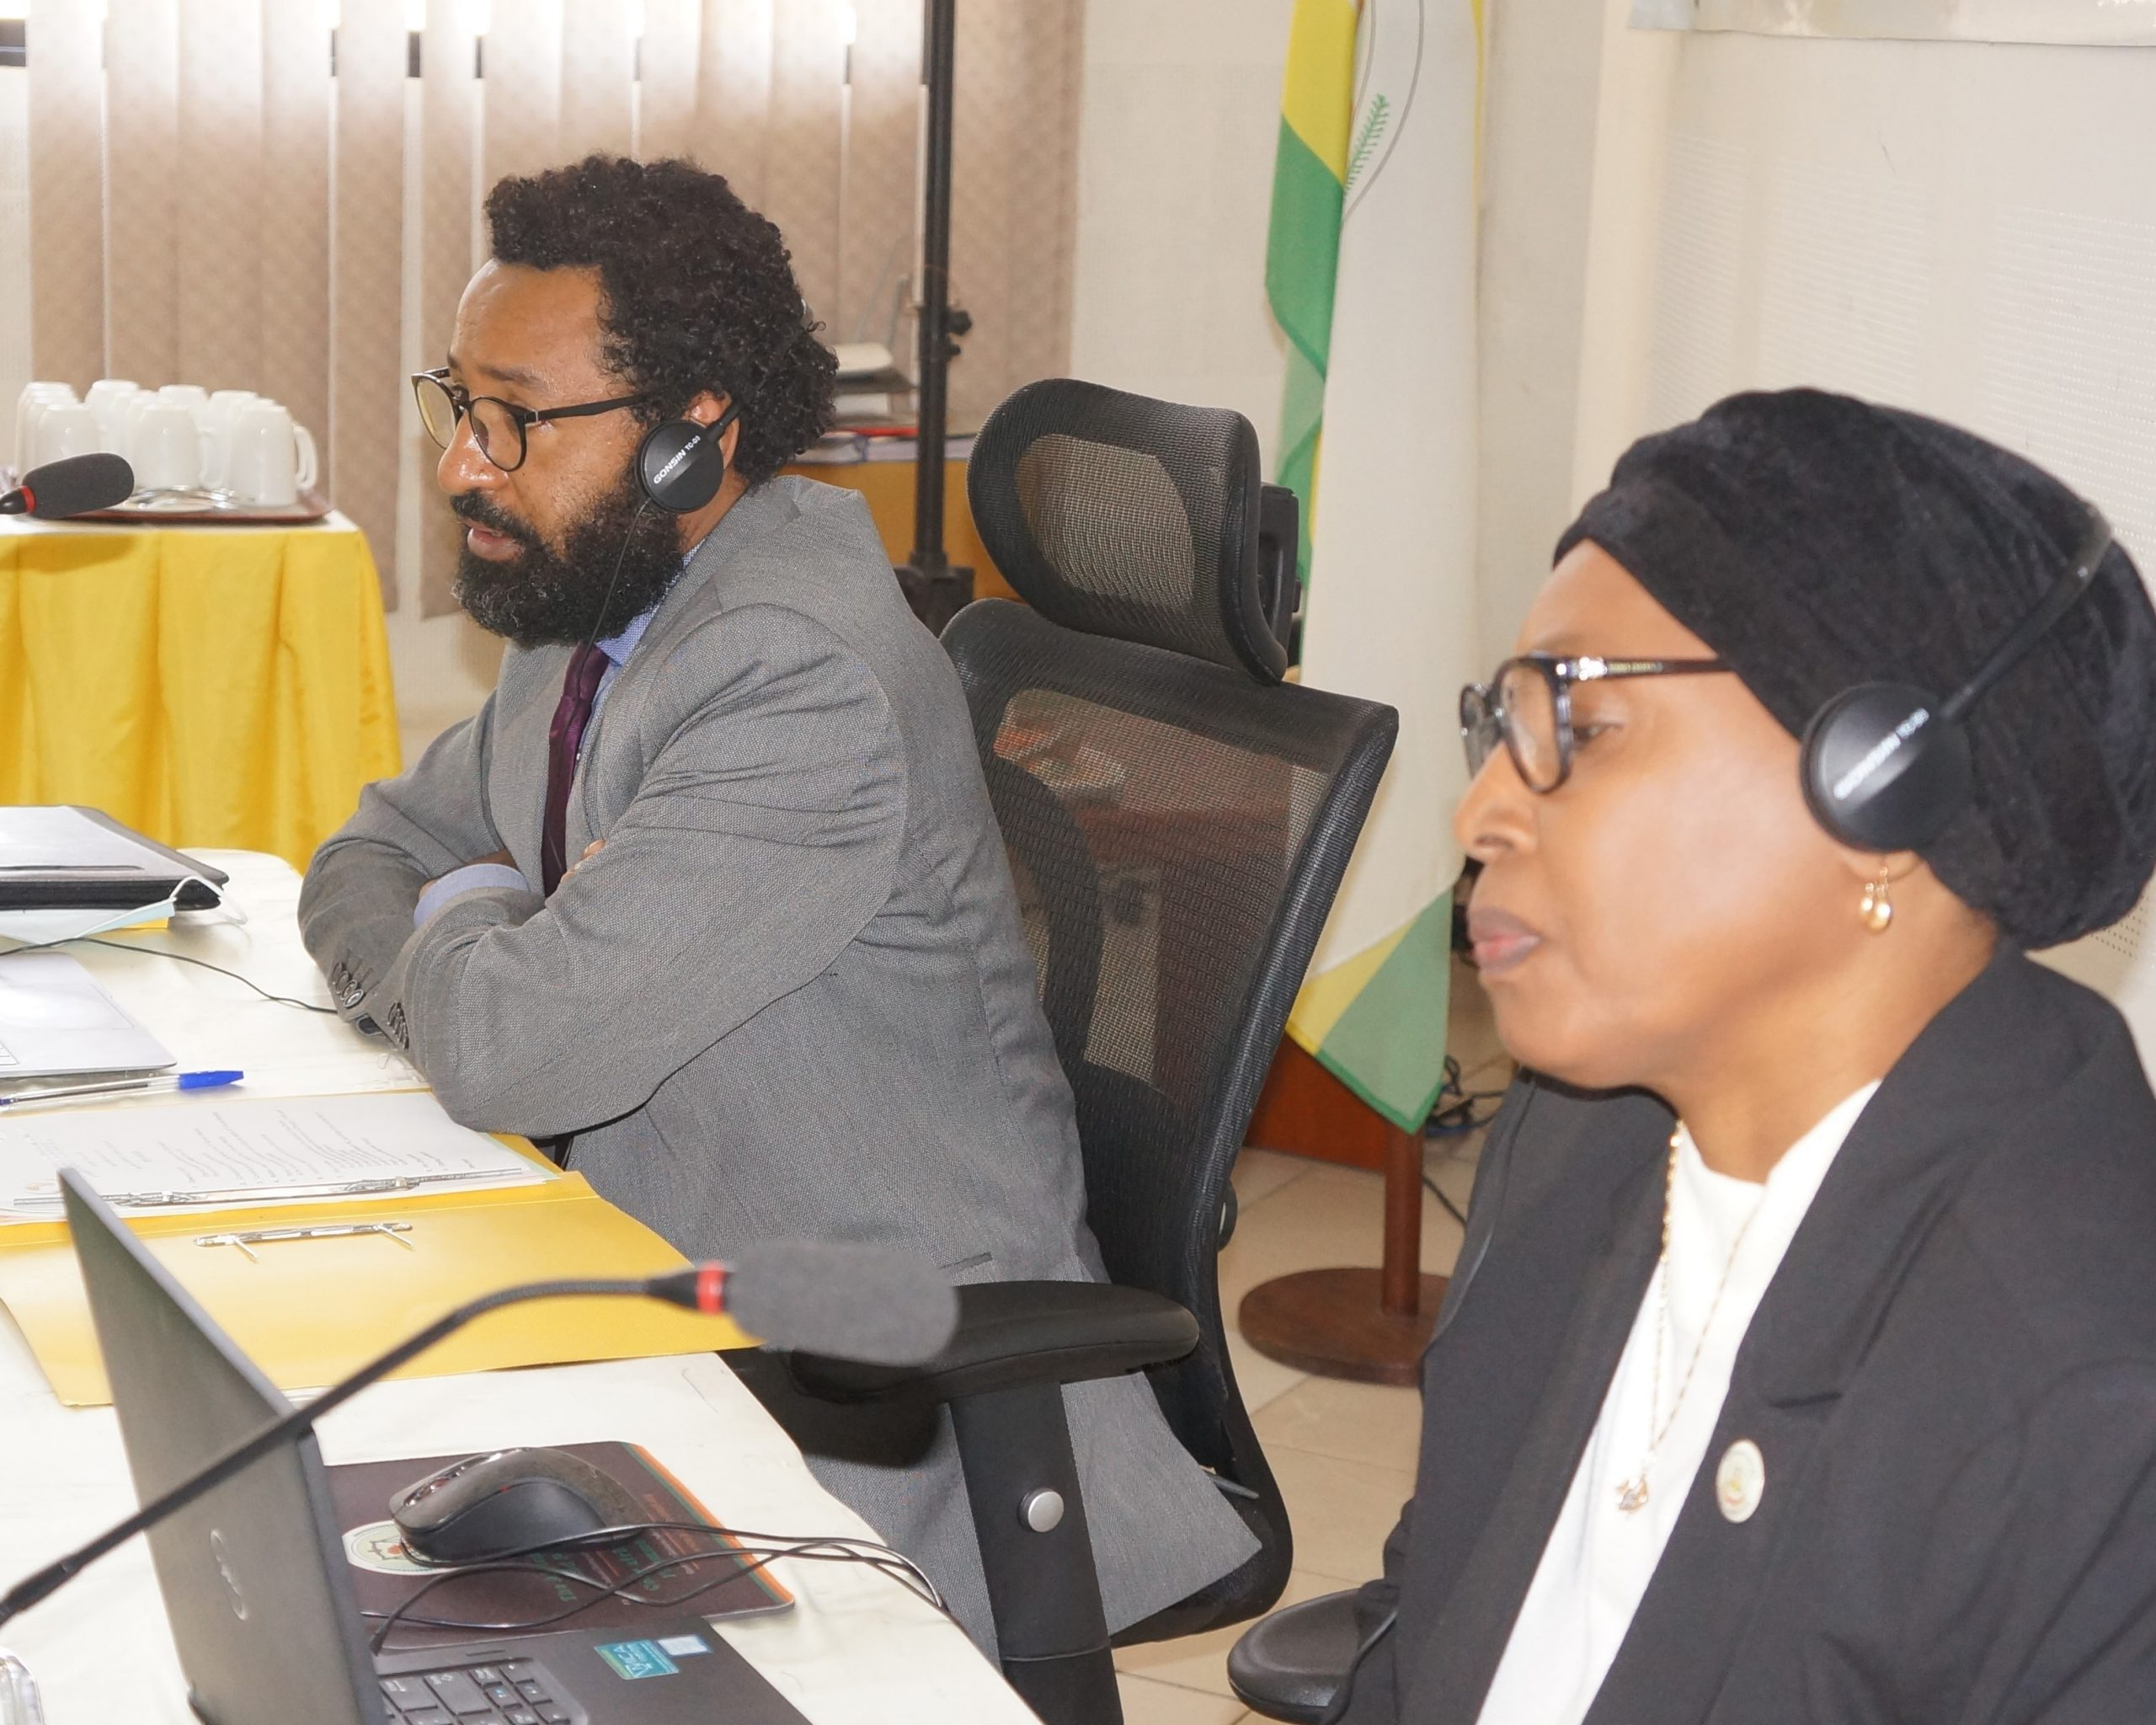 THE AFRICAN COURT ON HUMAN AND PEOPLES' RIGHTS AND THE AFRICAN COMMISSION ON HUMAN AND PEOPLES' RIGHTS MEET IN ARUSHA